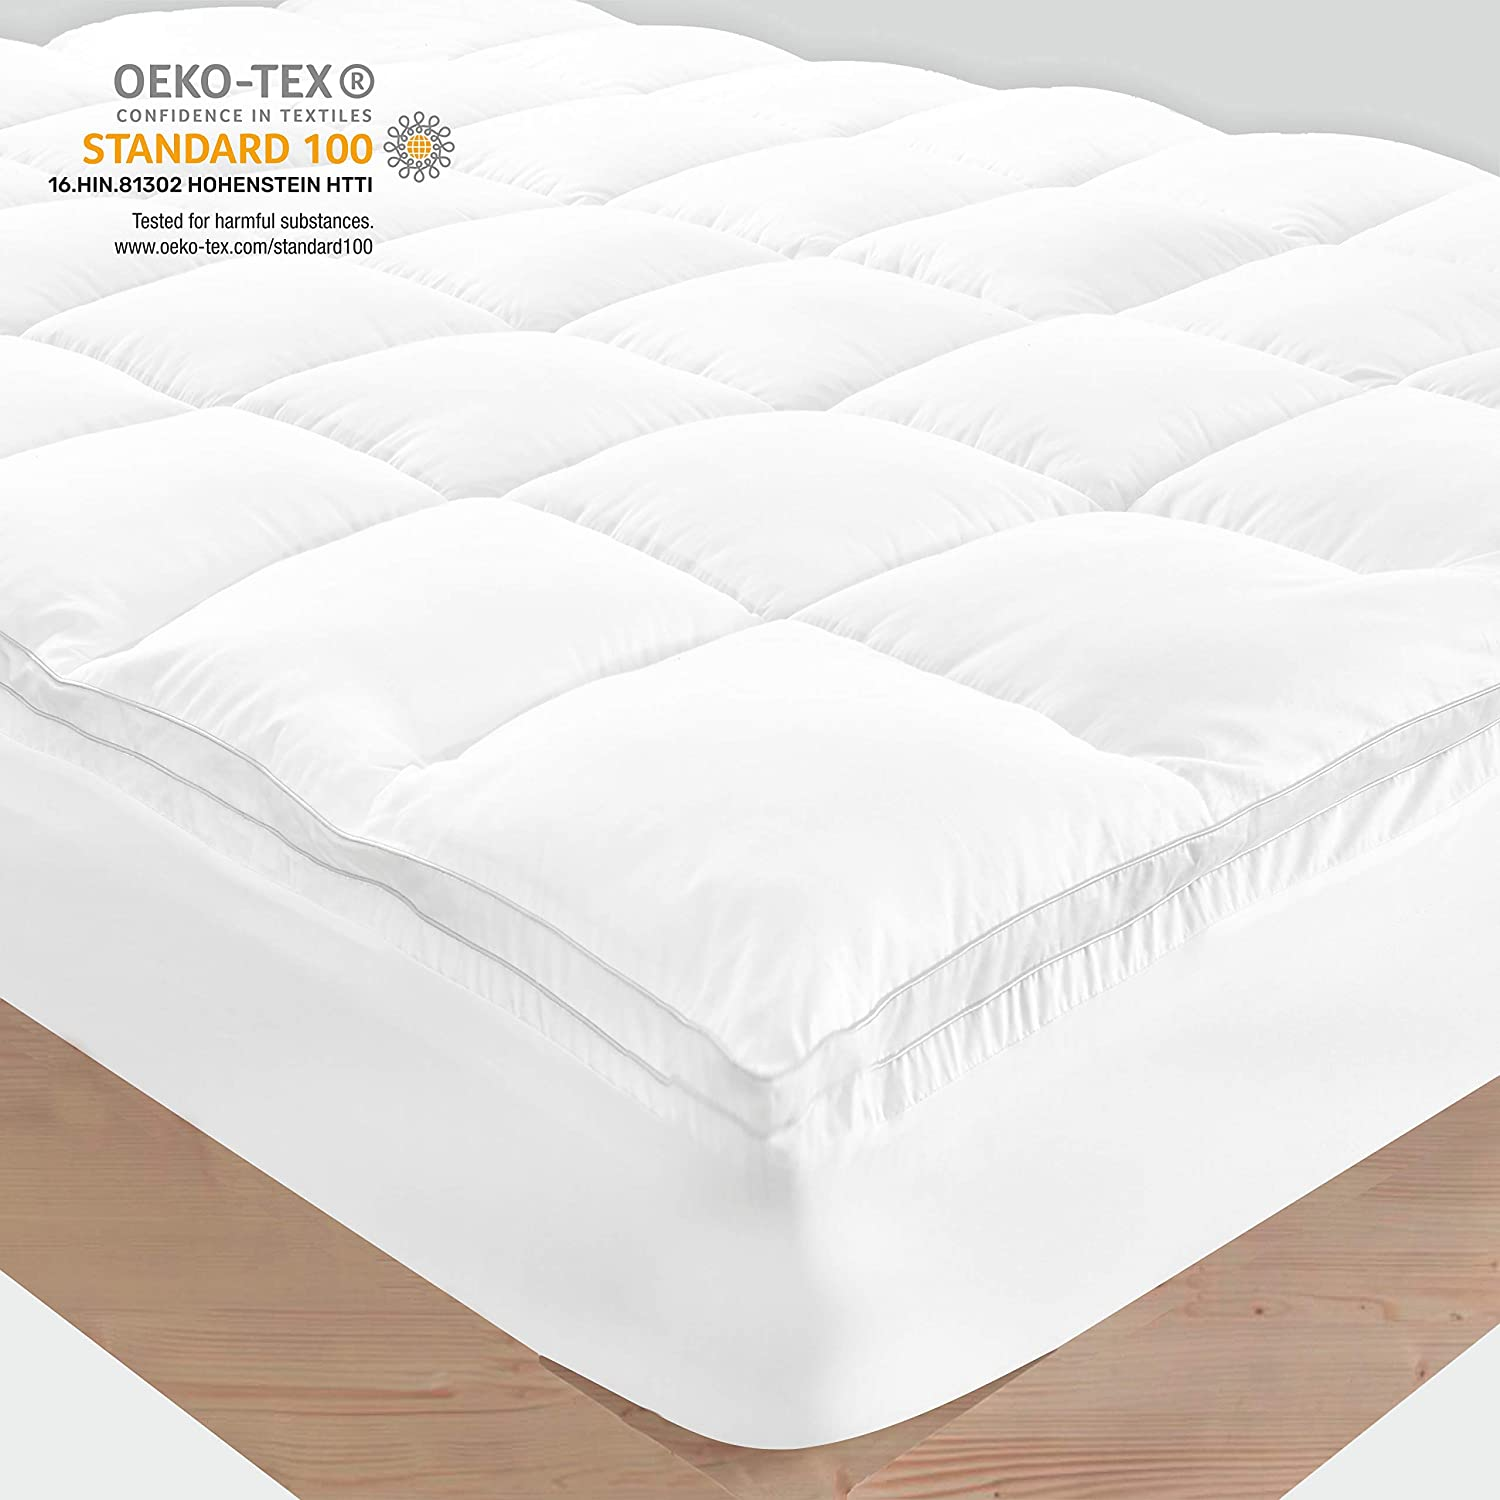 Sleep Mantra King Mattress Topper Pillow Top - White 100% Cotton Plush 2 Inch Mattress-Pad with Cooling Down Alternative Fill, 18 Inch Fitted Skirt for Thick Firm Mattress